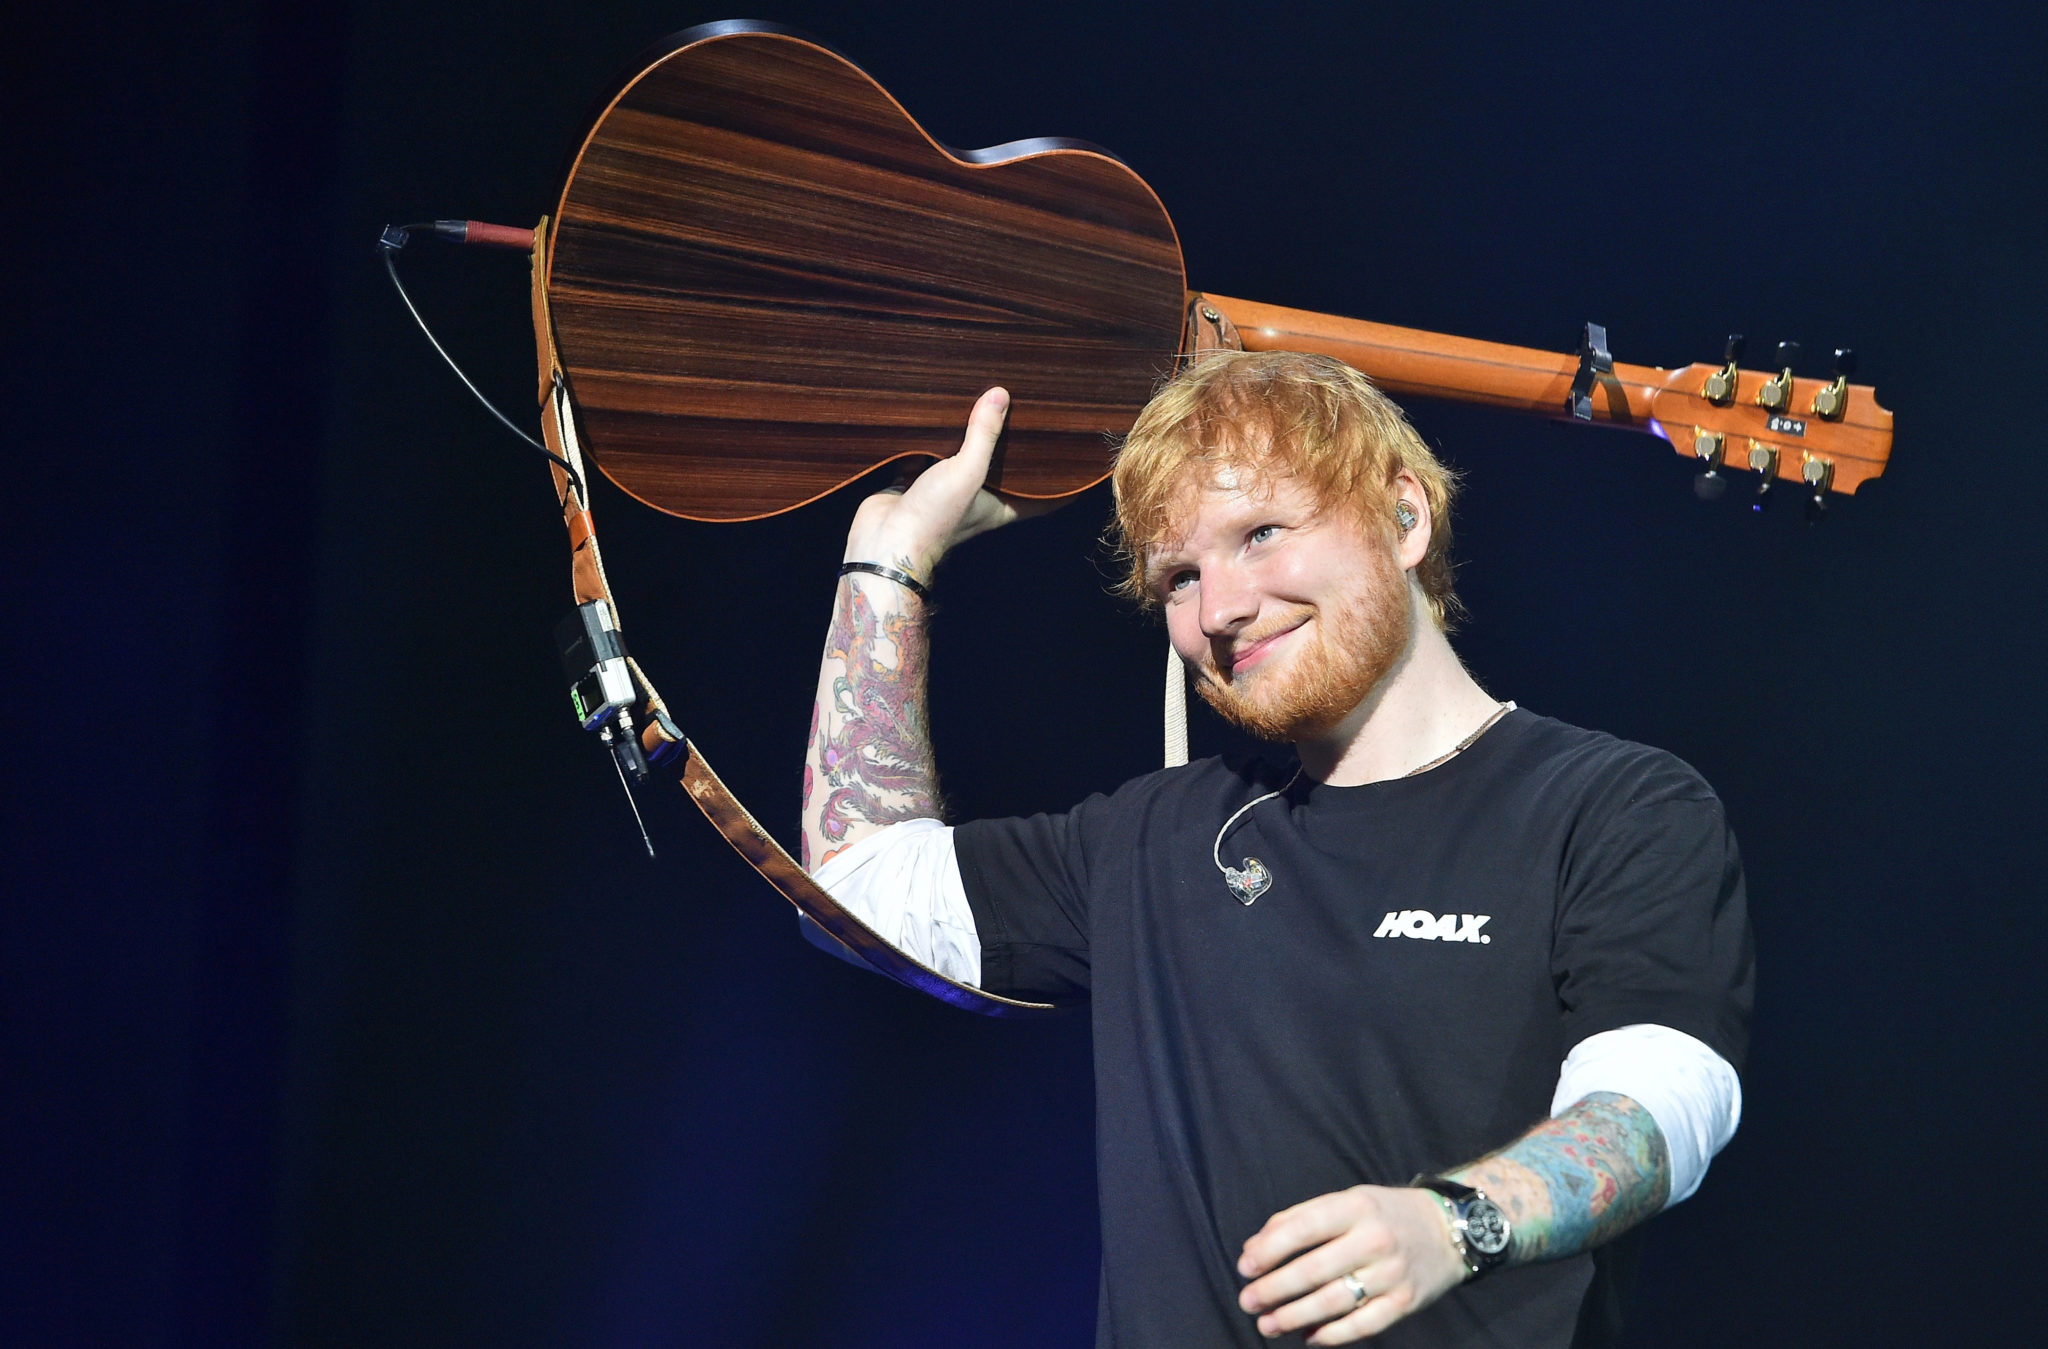 Ed Sheeran performs in Moscow, 19-07-2019.